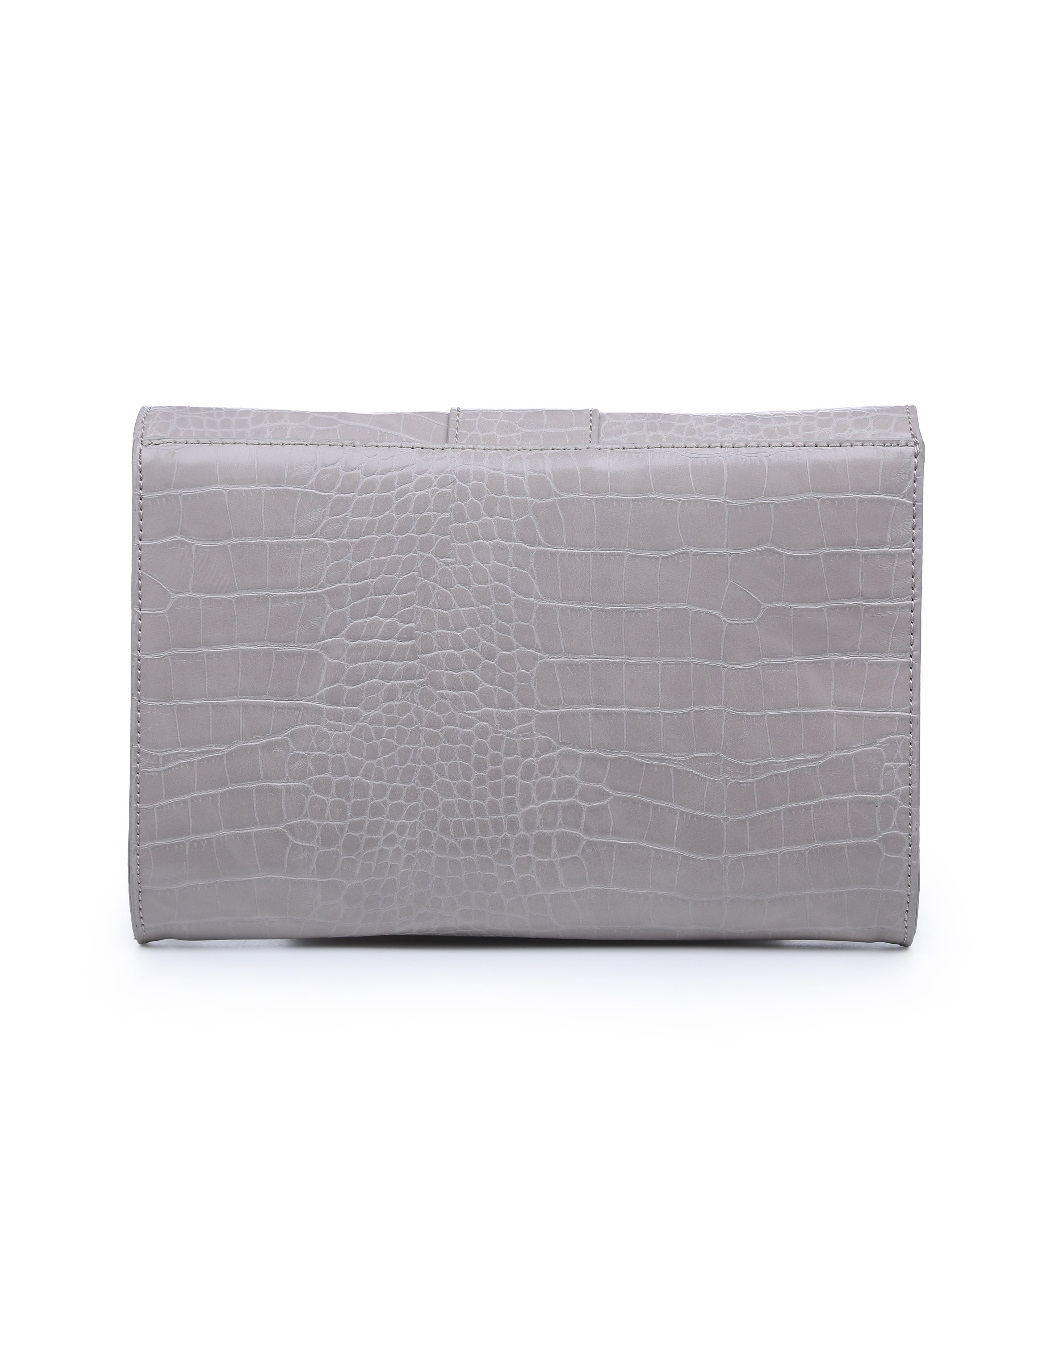 Croc Embossed Buckle Clutch